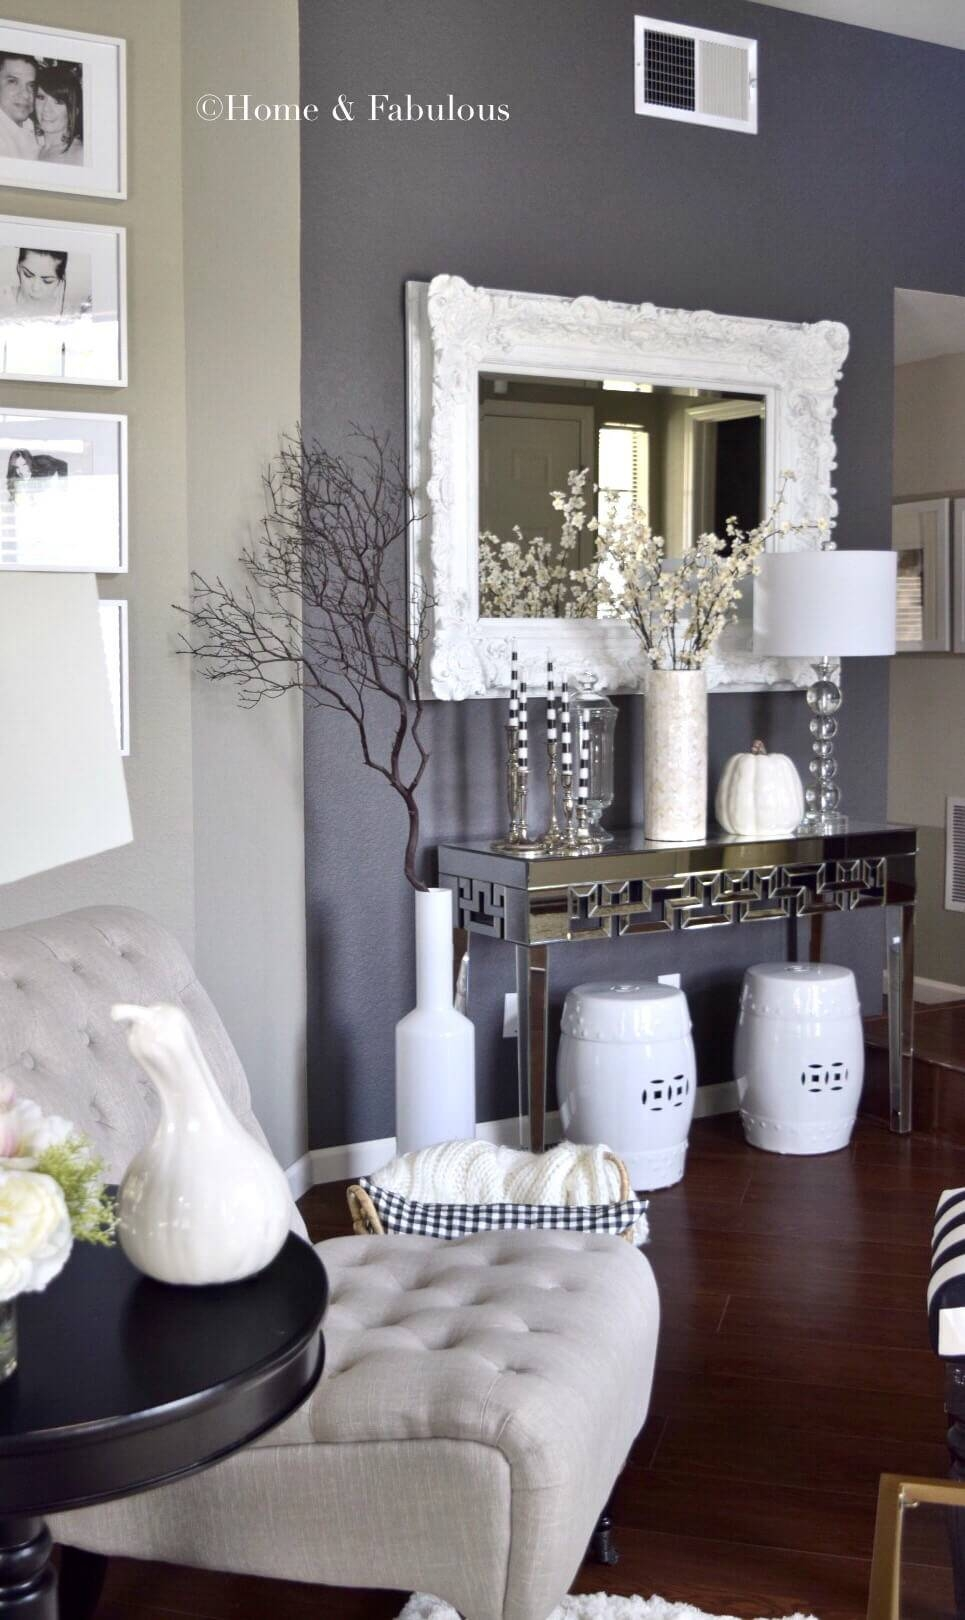 33 Best Mirror Decoration Ideas And Designs For 2017 inside White Decorative Mirrors (Image 2 of 25)